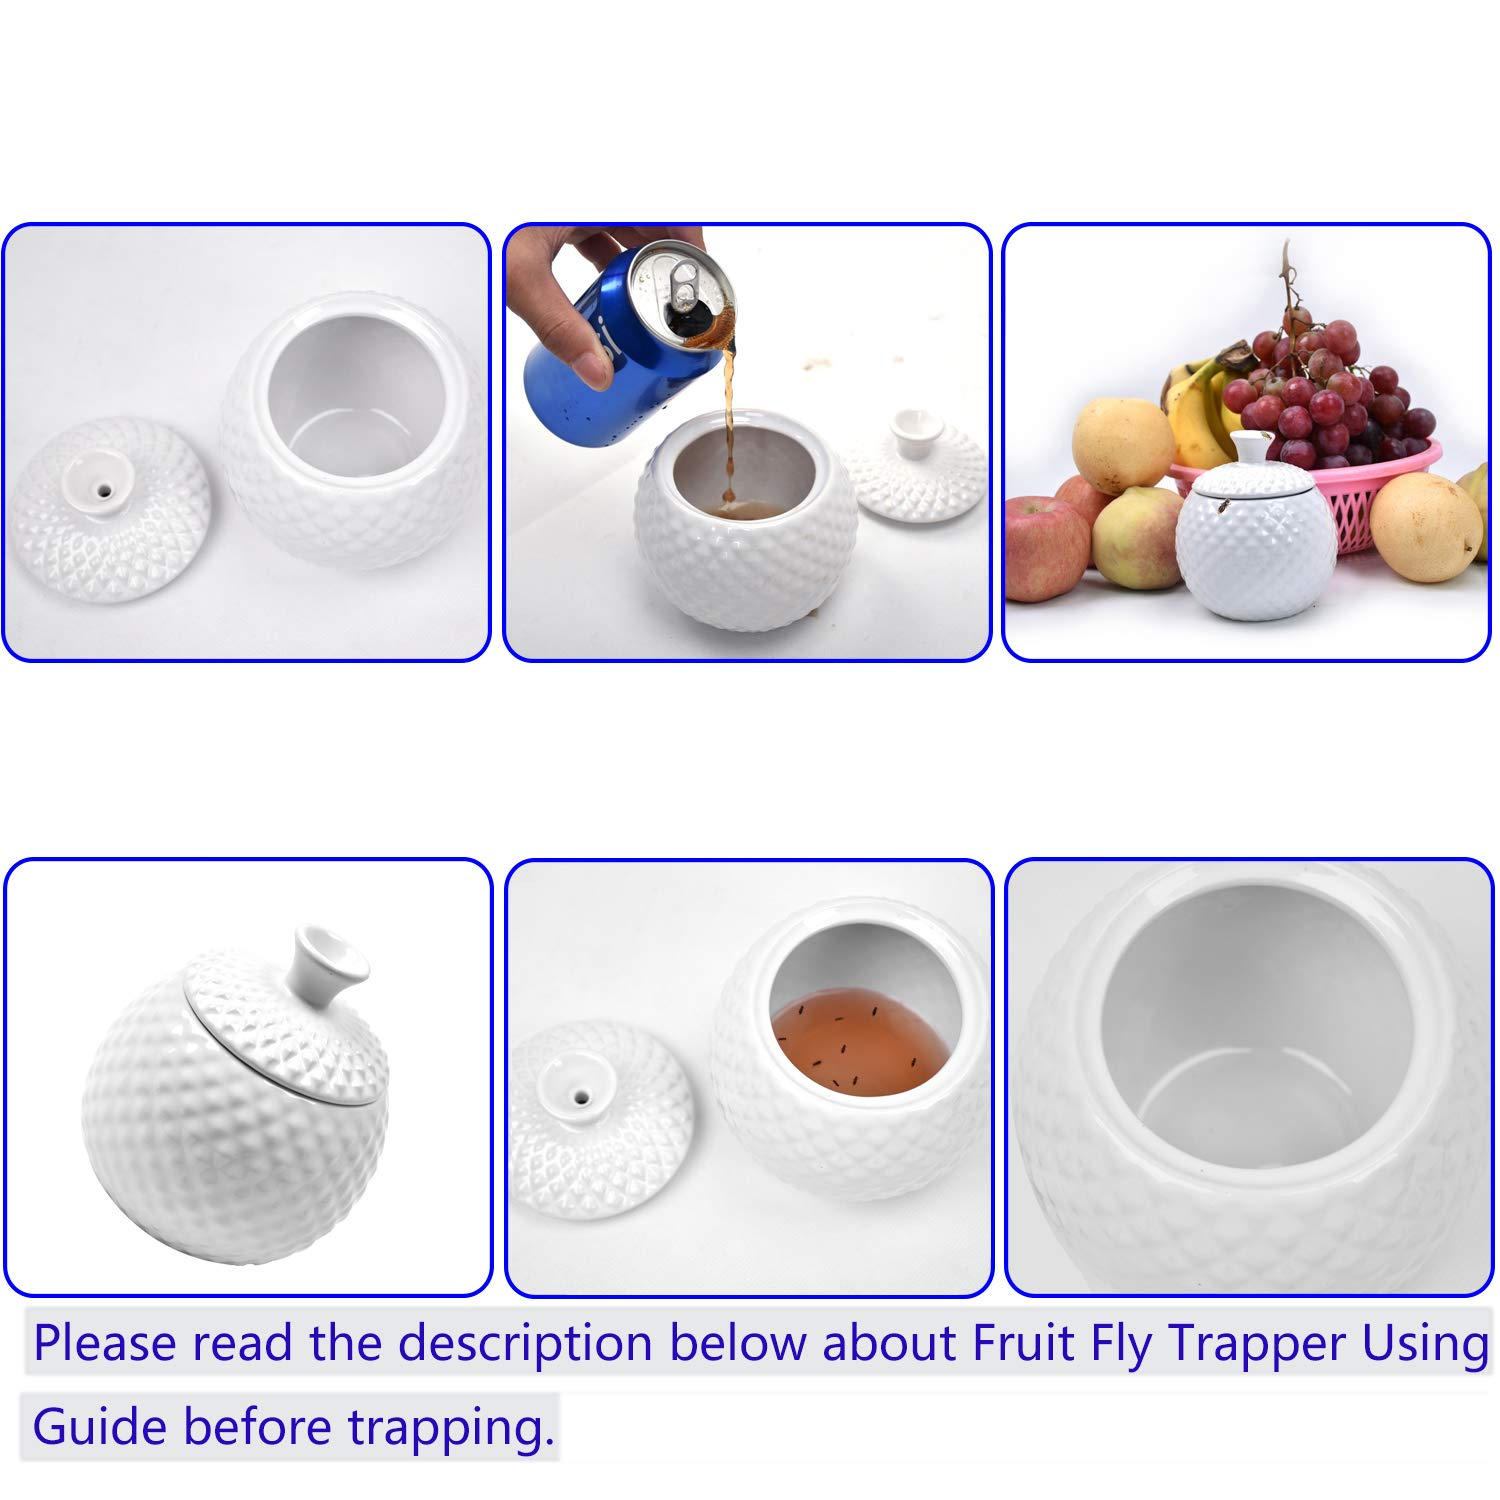 ATHORBOT Fruit Fly Catcher Trapper for Home Kitchens Natural Pest Control Chemical Free Nontoxic Decorative Kid and Pet Friendly (White), ONE Size